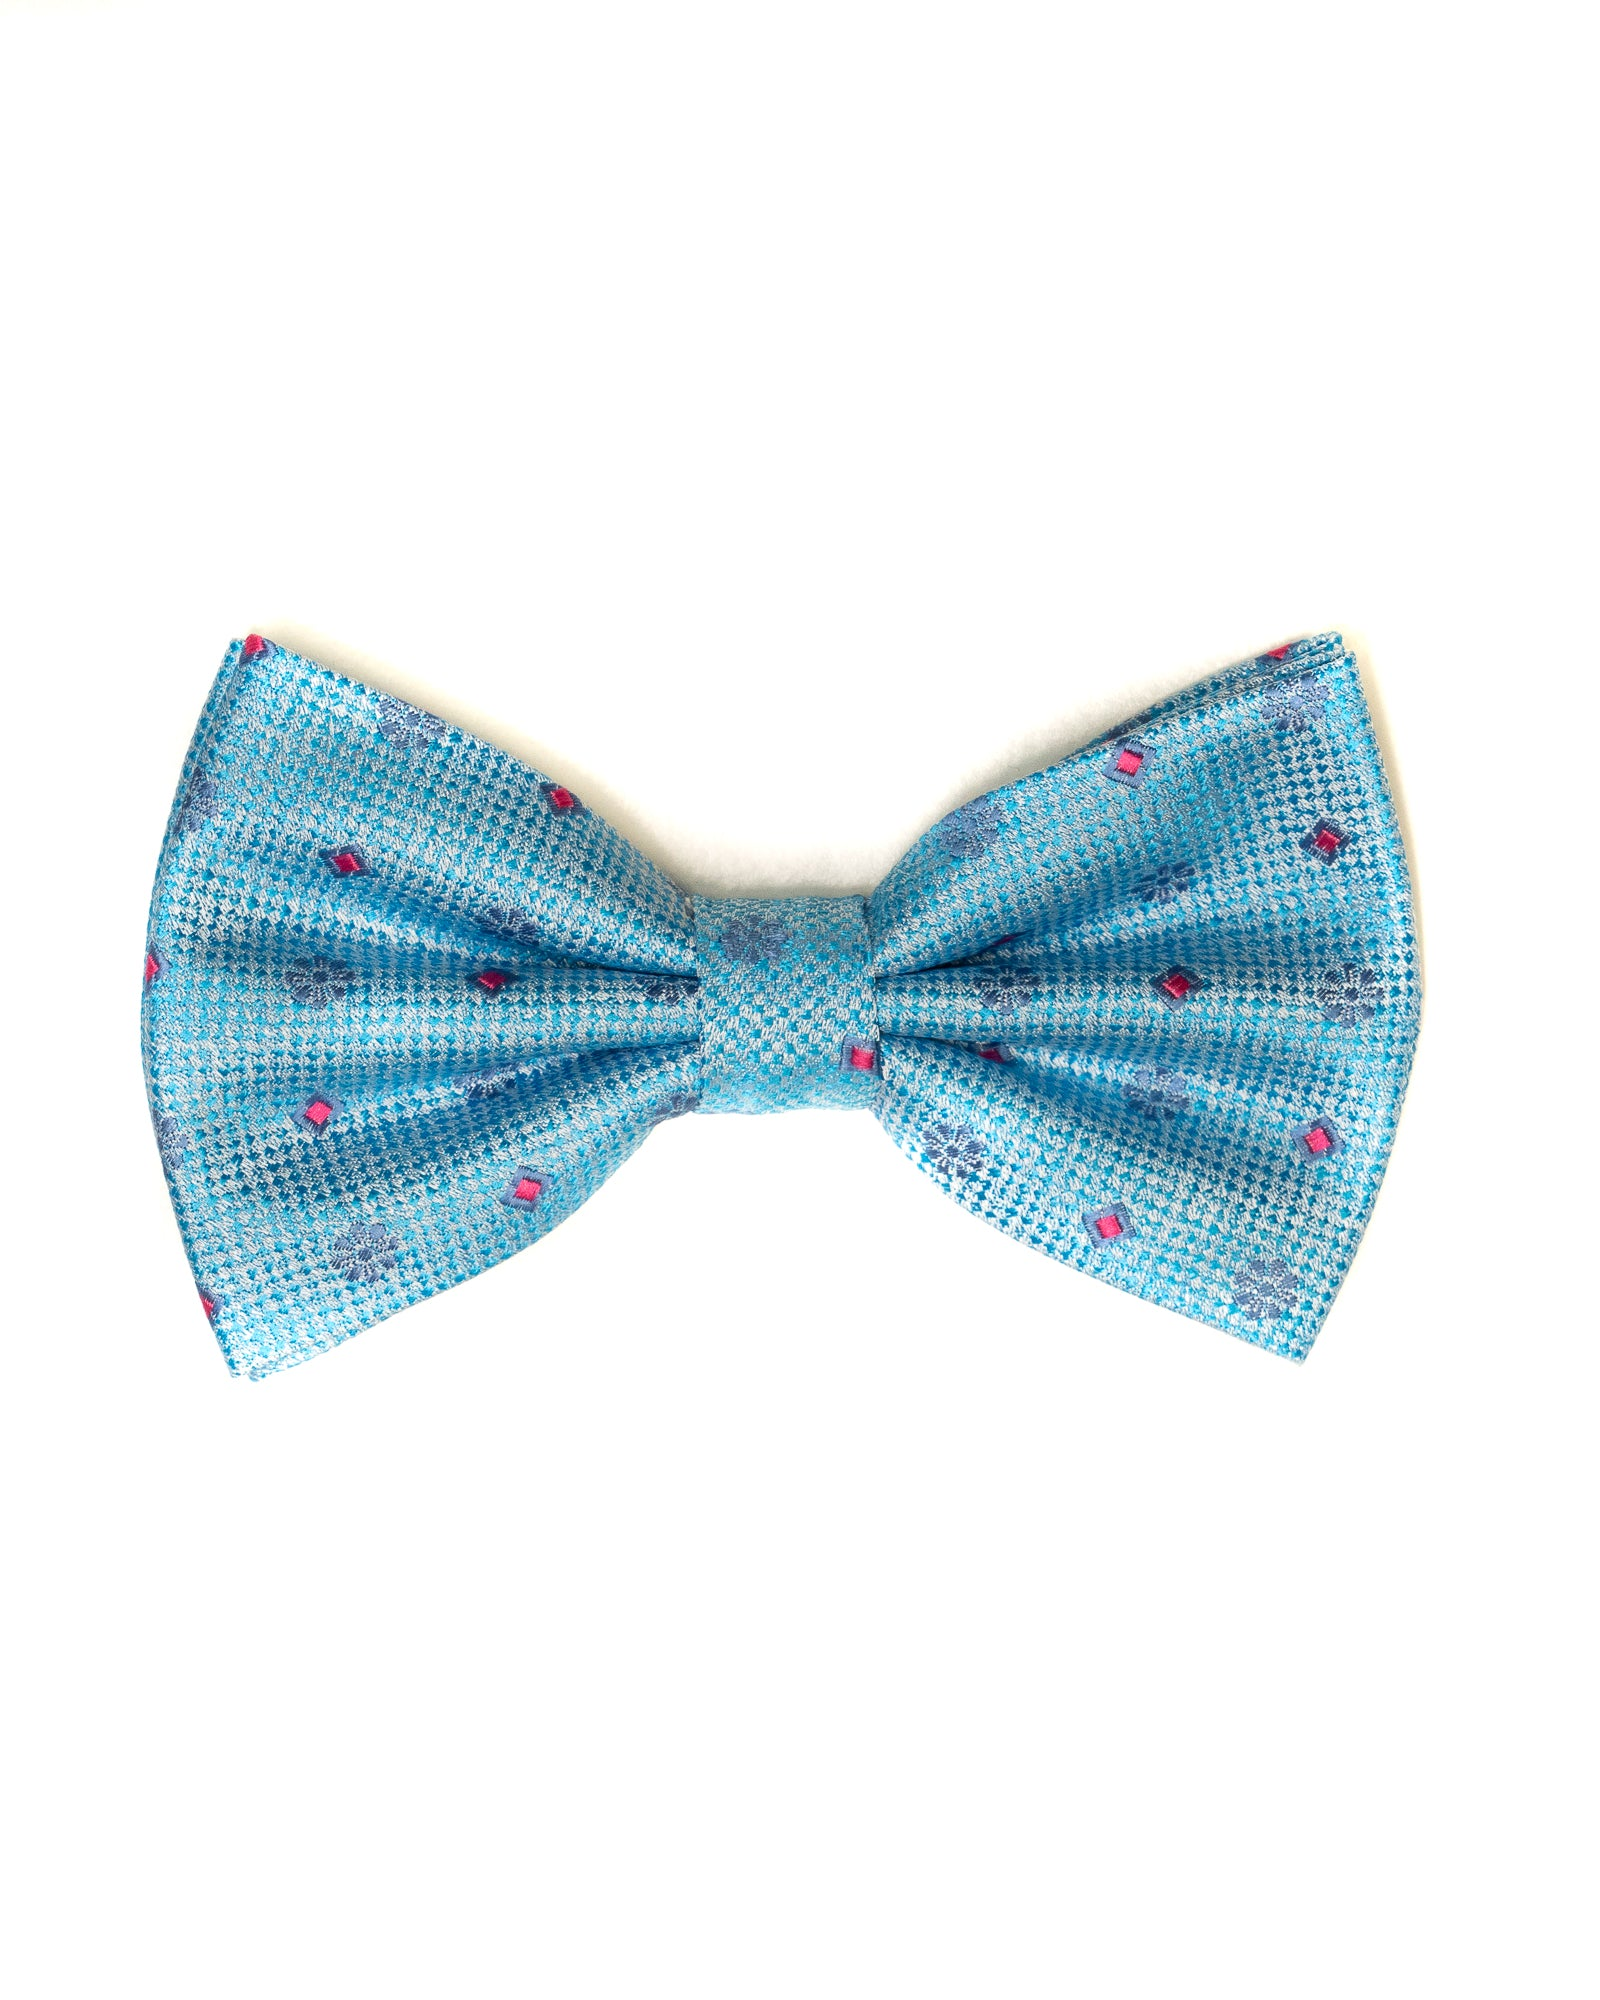 Bow Tie In Foulard Pattern Turquoise - Rainwater's Men's Clothing and Tuxedo Rental